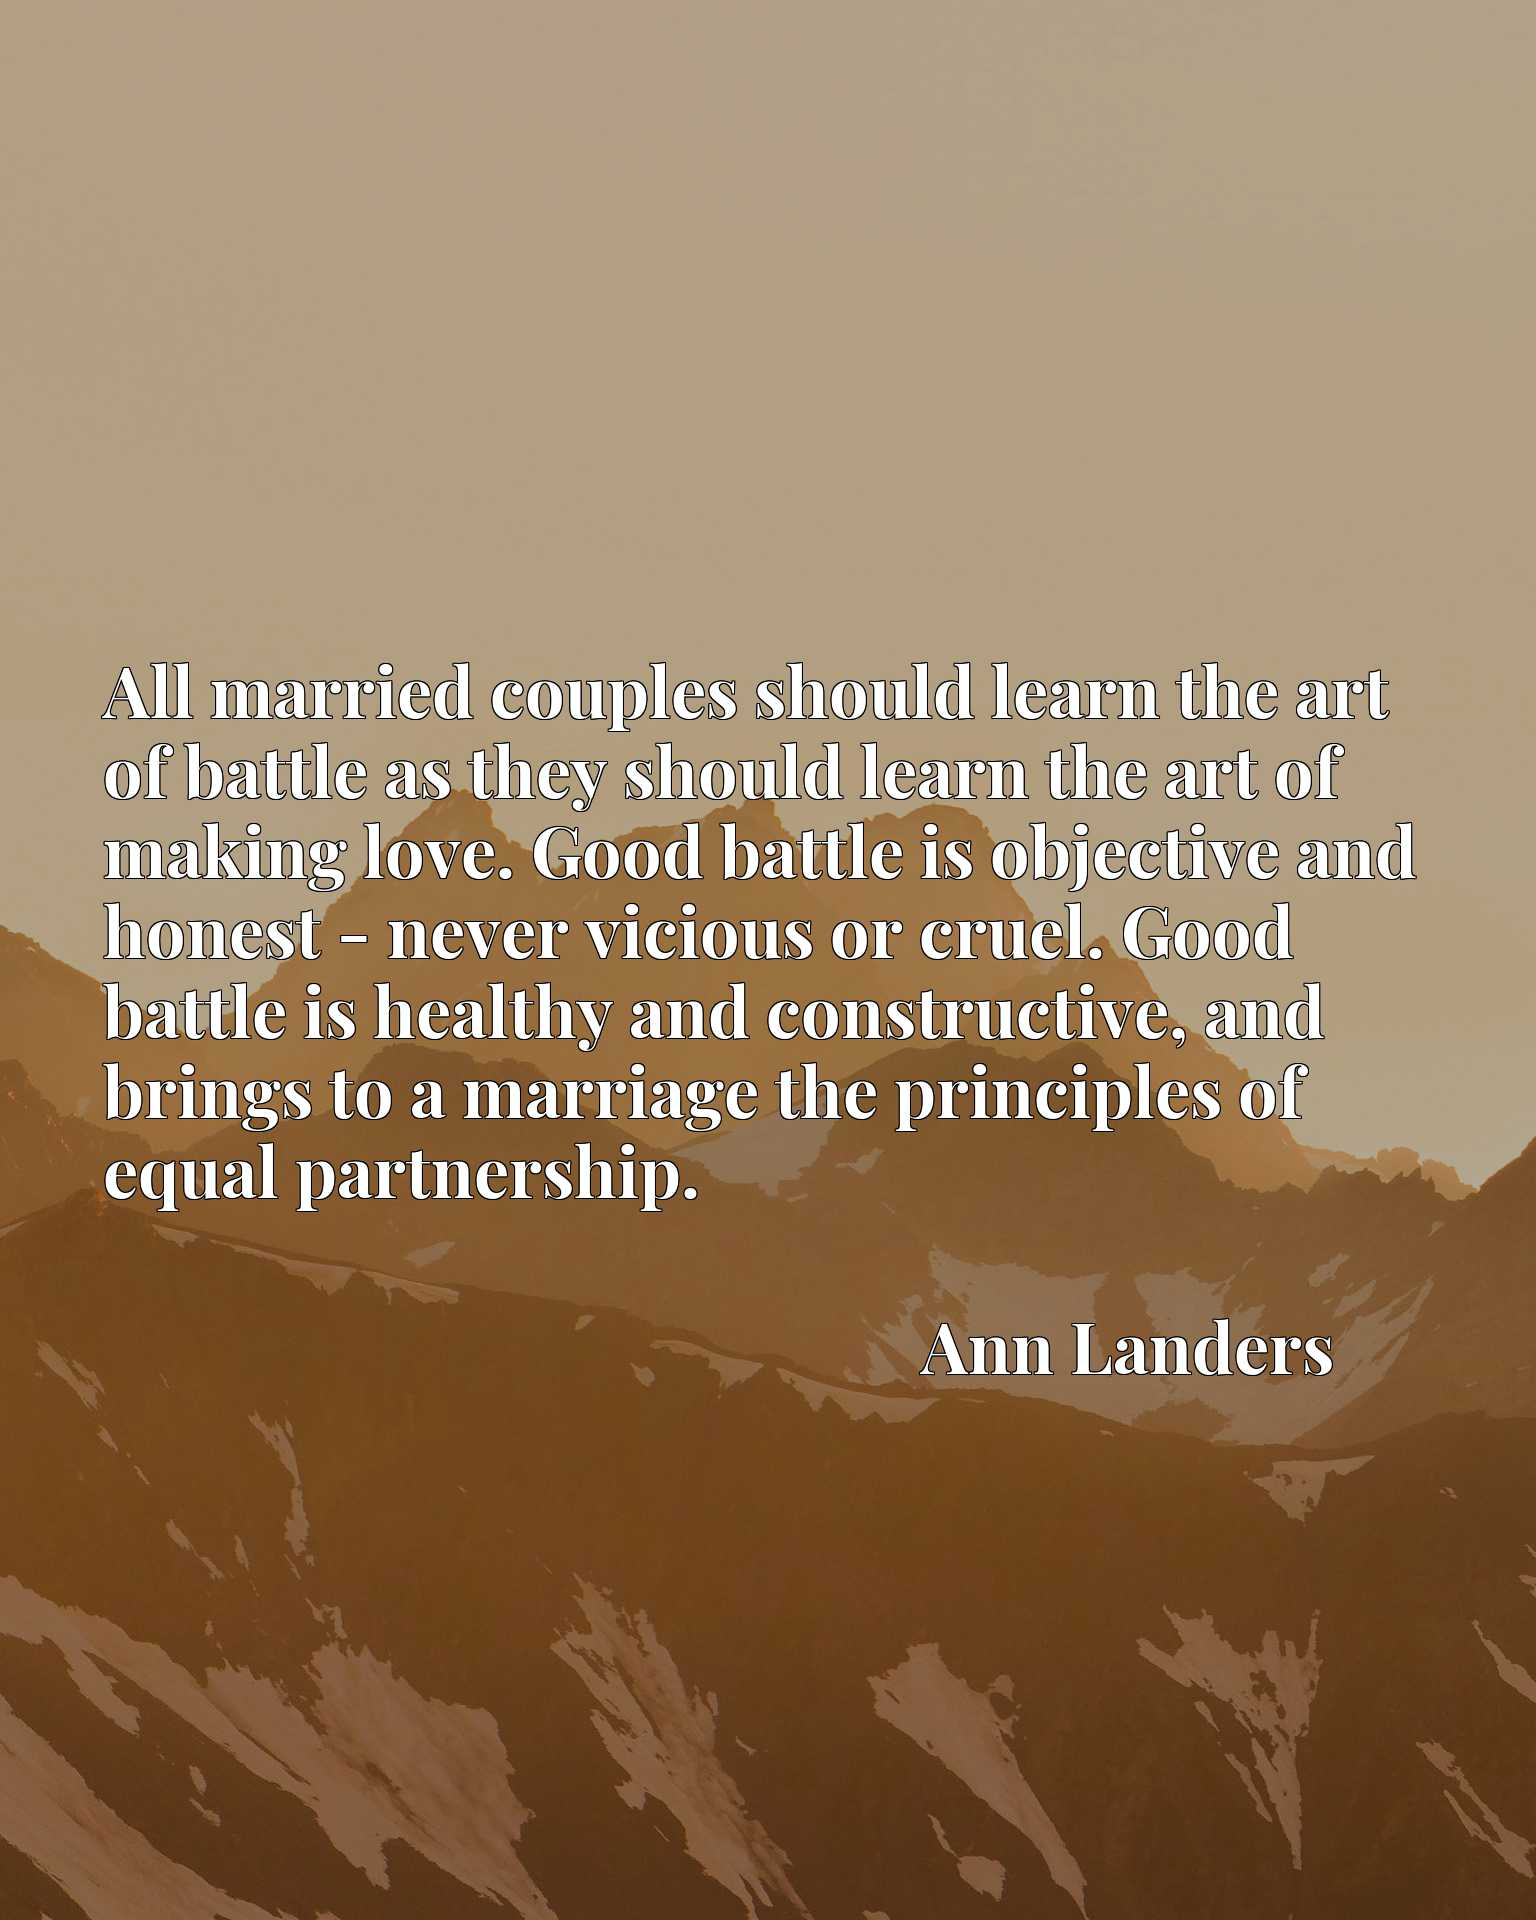 All married couples should learn the art of battle as they should learn the art of making love. Good battle is objective and honest - never vicious or cruel. Good battle is healthy and constructive, and brings to a marriage the principles of equal partnership.